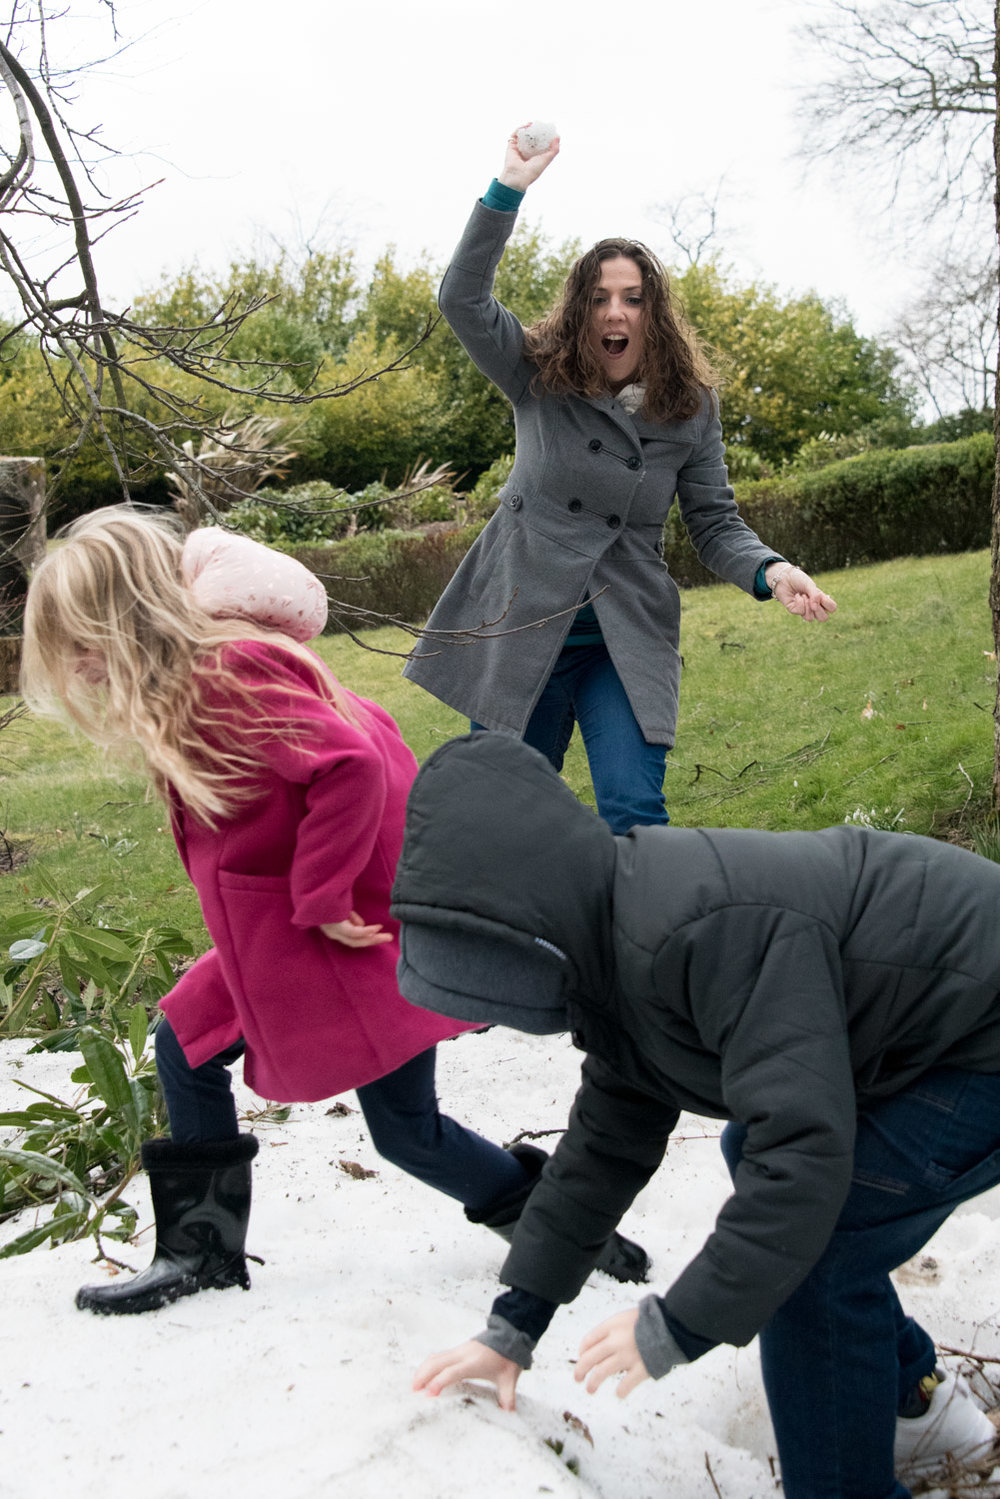 Family Photo Shoot In Dunfermline - snowball fight 03